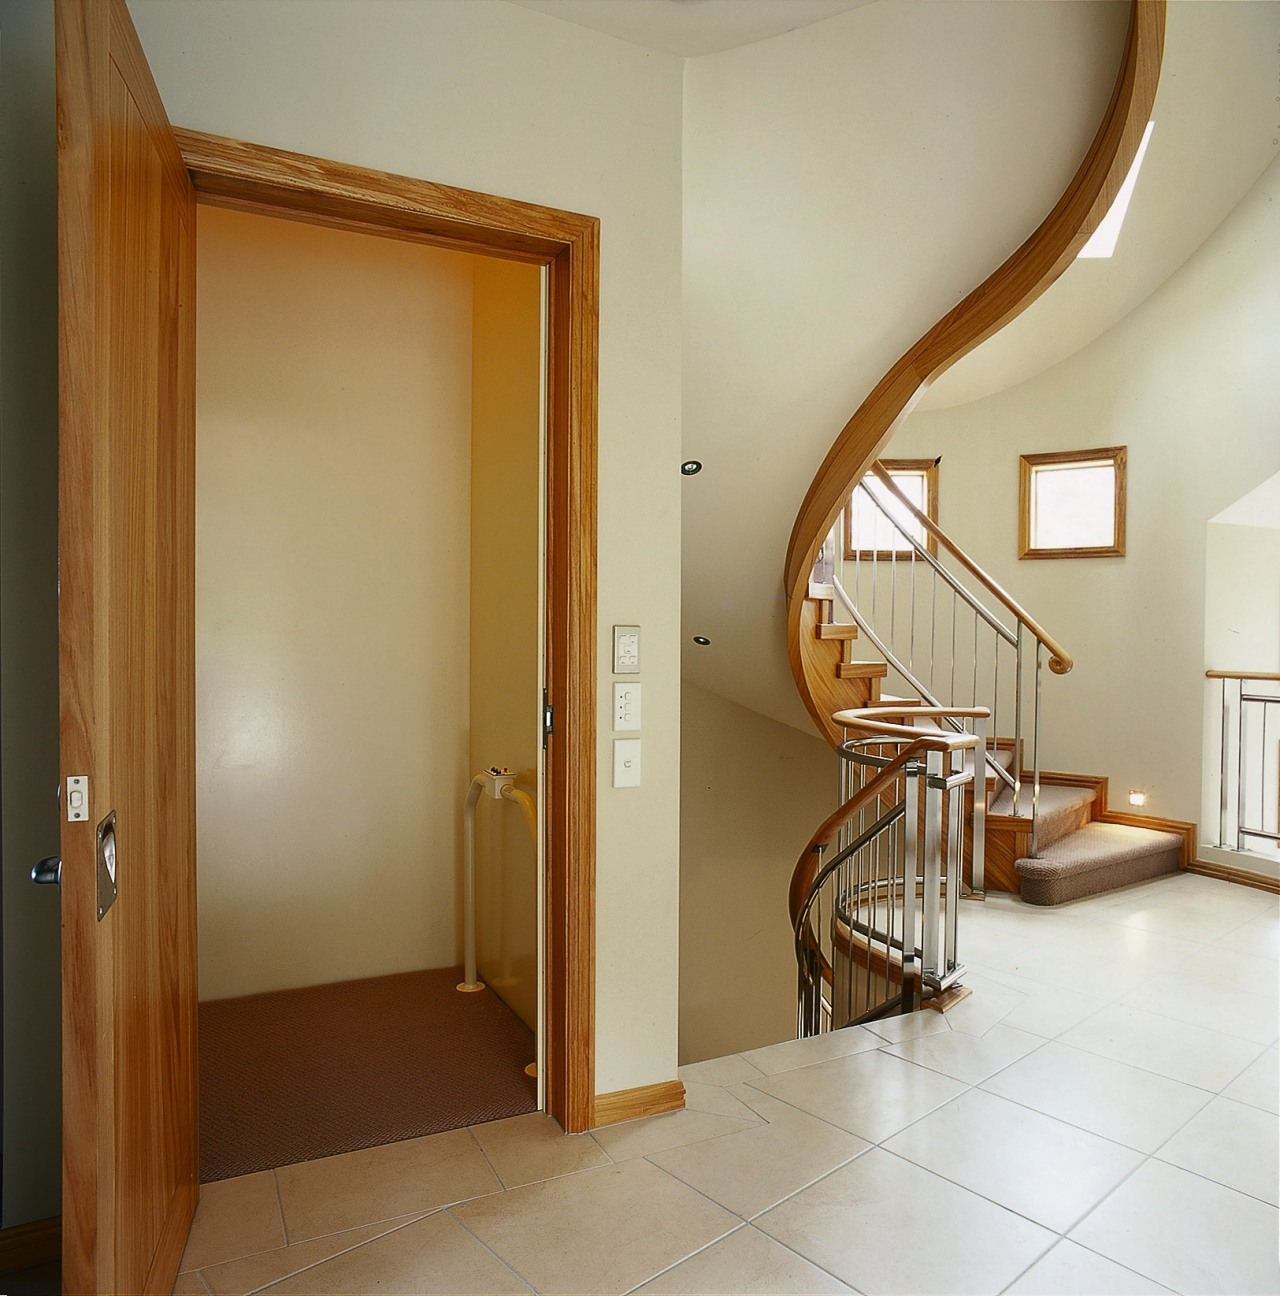 A photograph of an elevator on the second architecture, ceiling, door, floor, flooring, hardwood, home, interior design, property, real estate, room, stairs, wall, window, wood, wood flooring, brown, orange